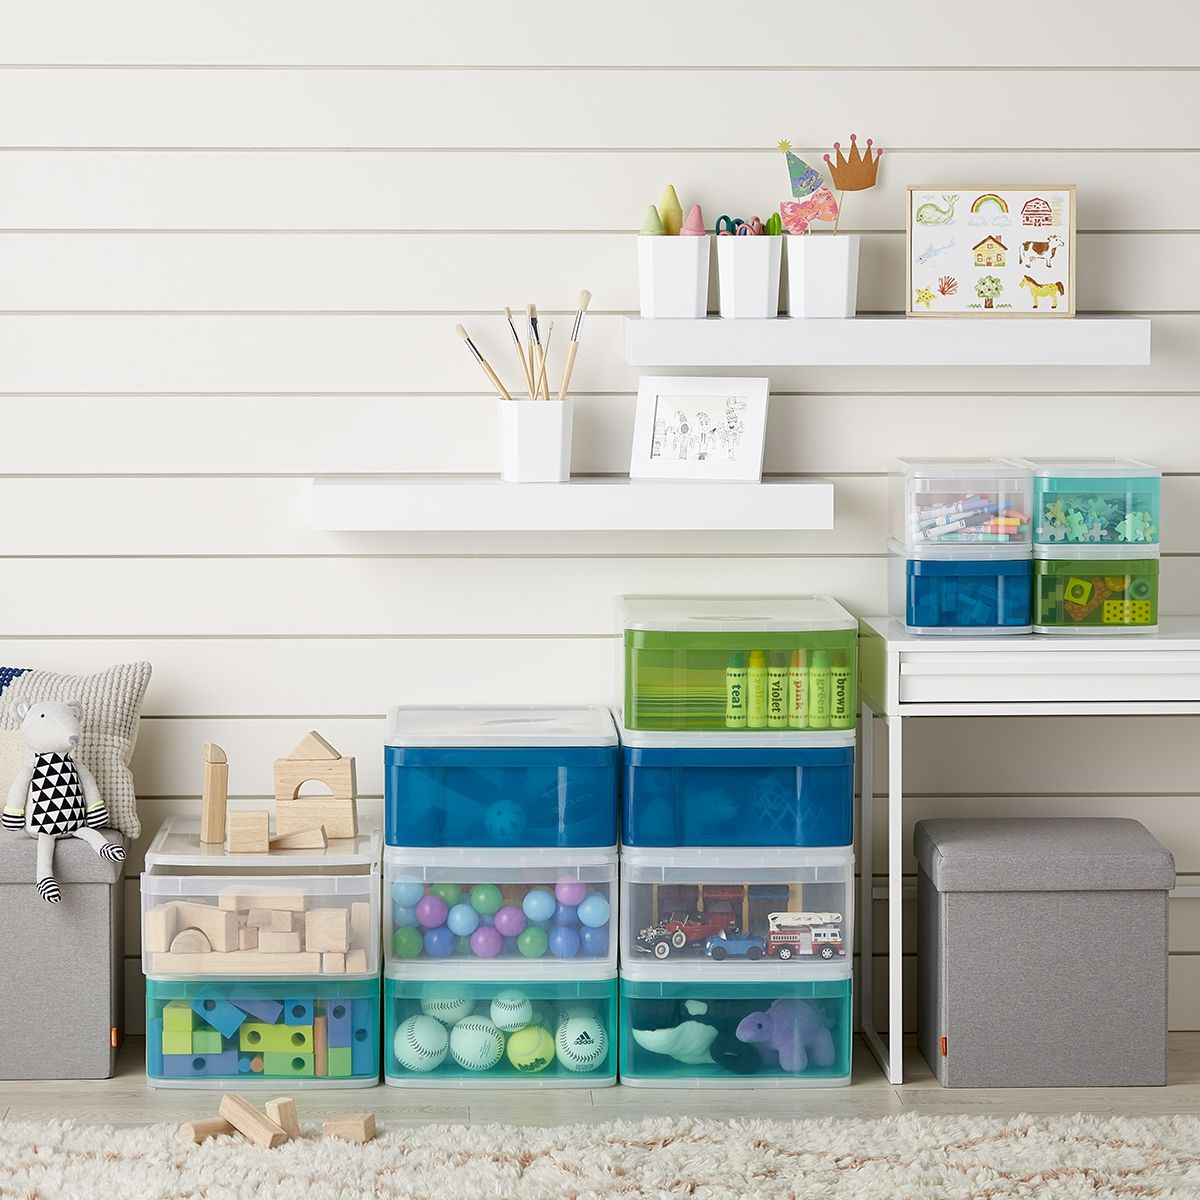 Toy Organization Stacking Colorful Plastic Drawers Are A Great Way For Your Kids To Organize Th Dorm Room Organization Diy Room Storage Diy Stackable Storage